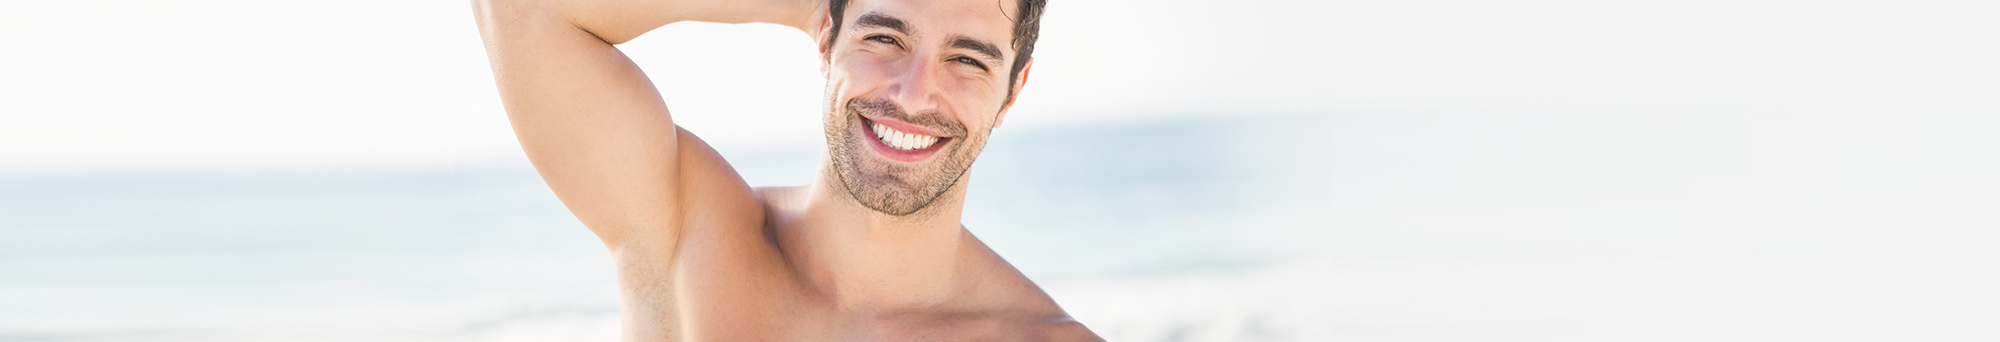 Dark haired man smiling and little facial hair